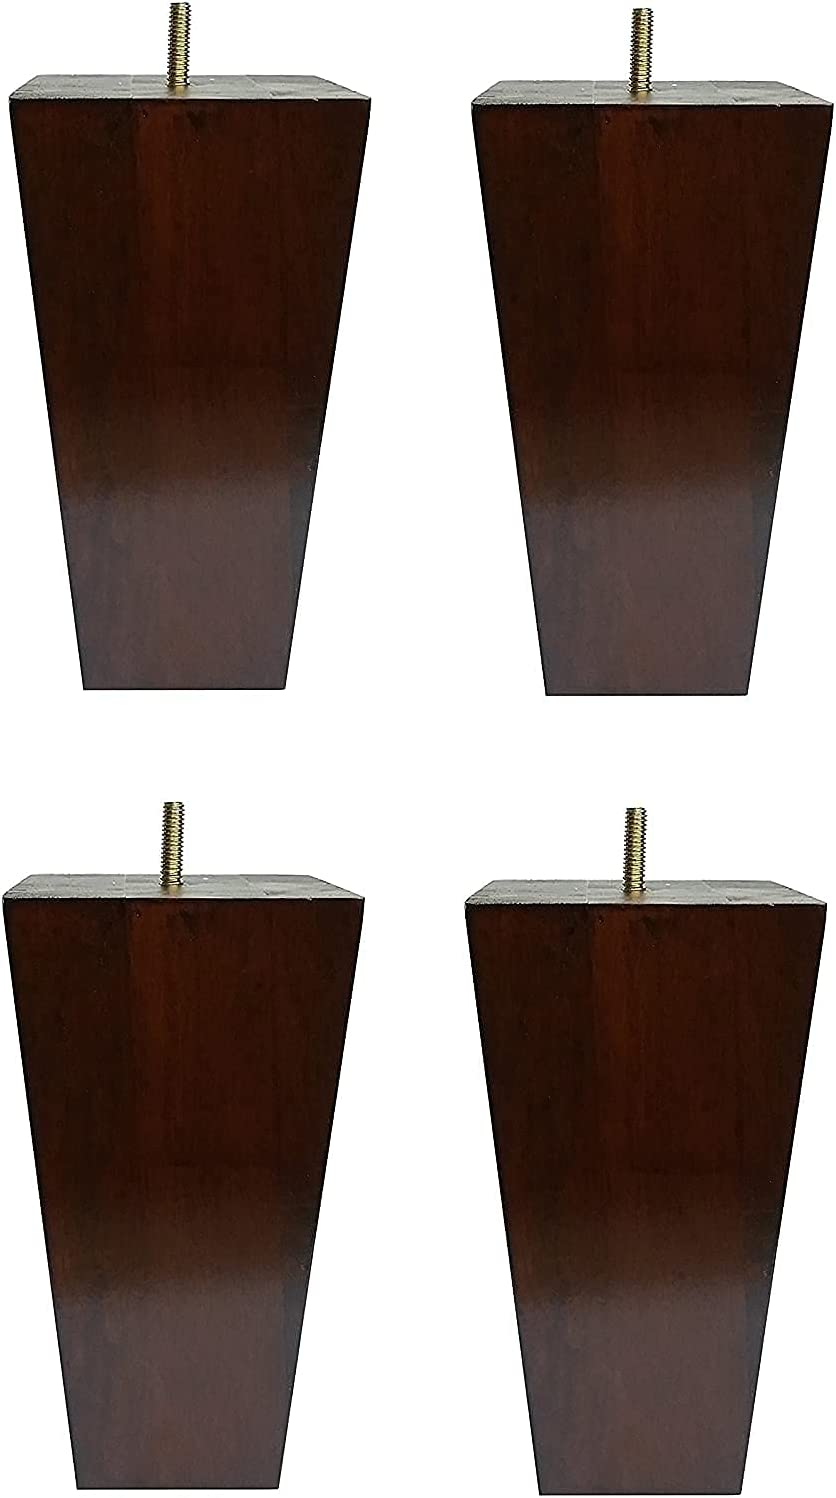 Wood Be super welcome Furniture Legs Sofa Square of Brown shipfree Couch Pack 4